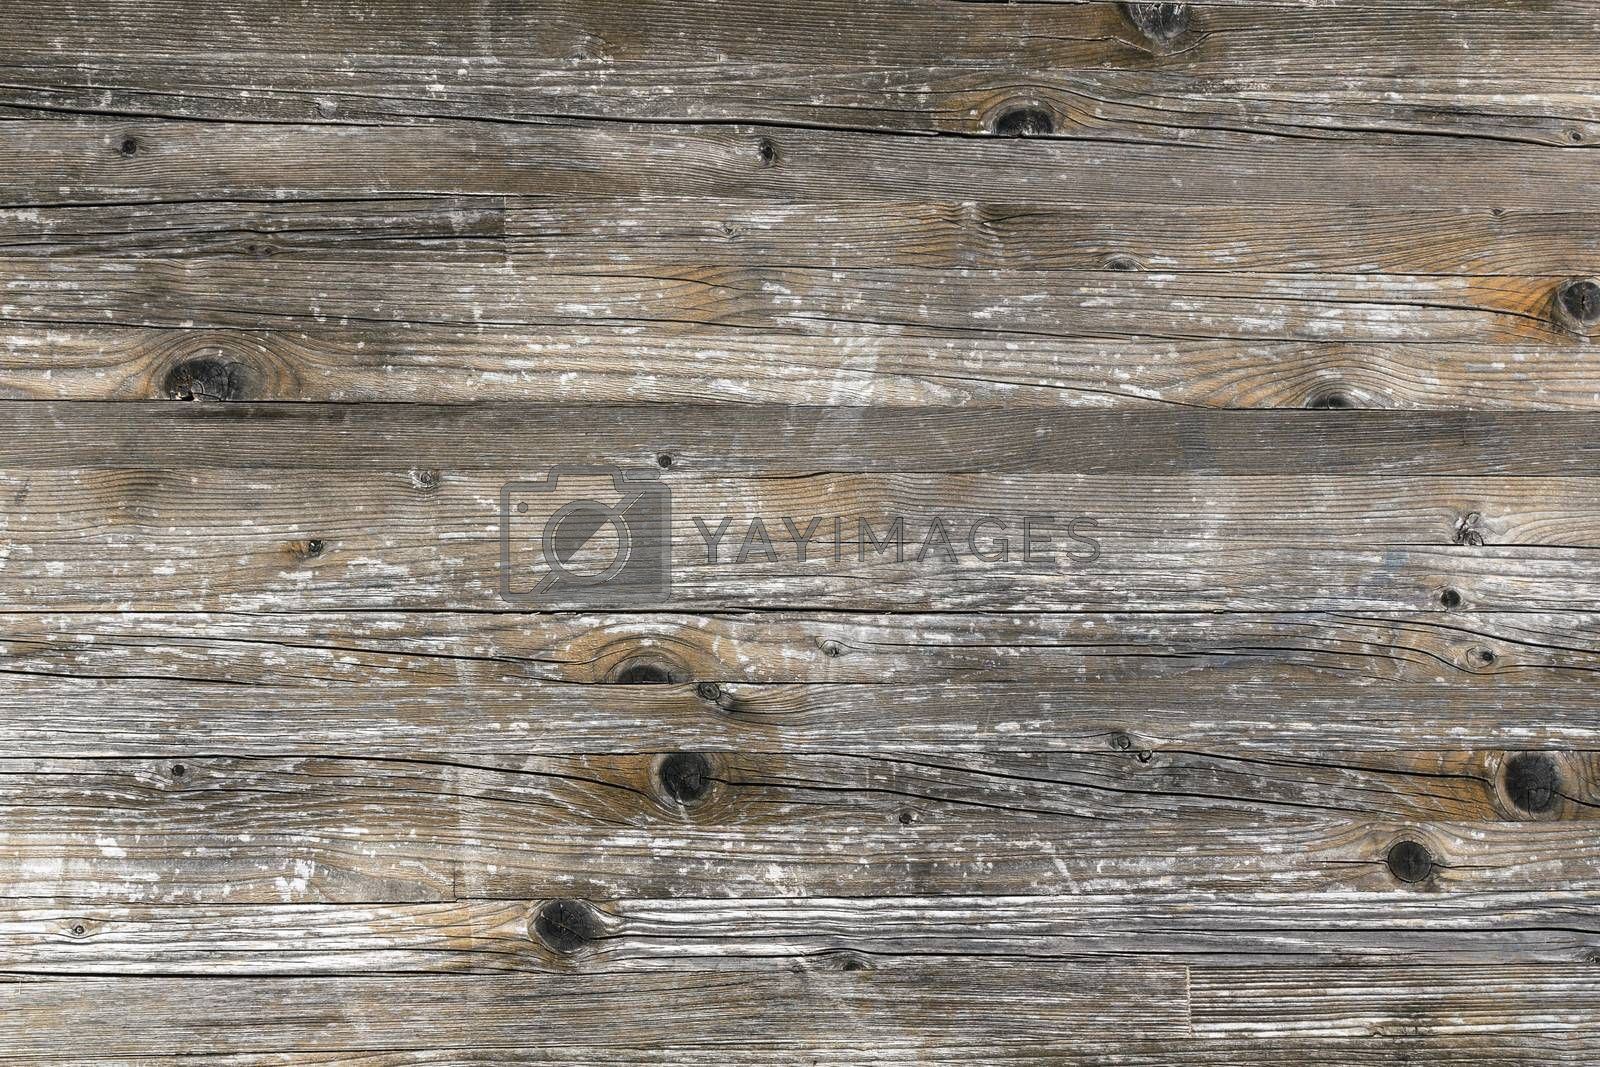 Wooden background. Wood backdrop forphotography grunge wooden texture.